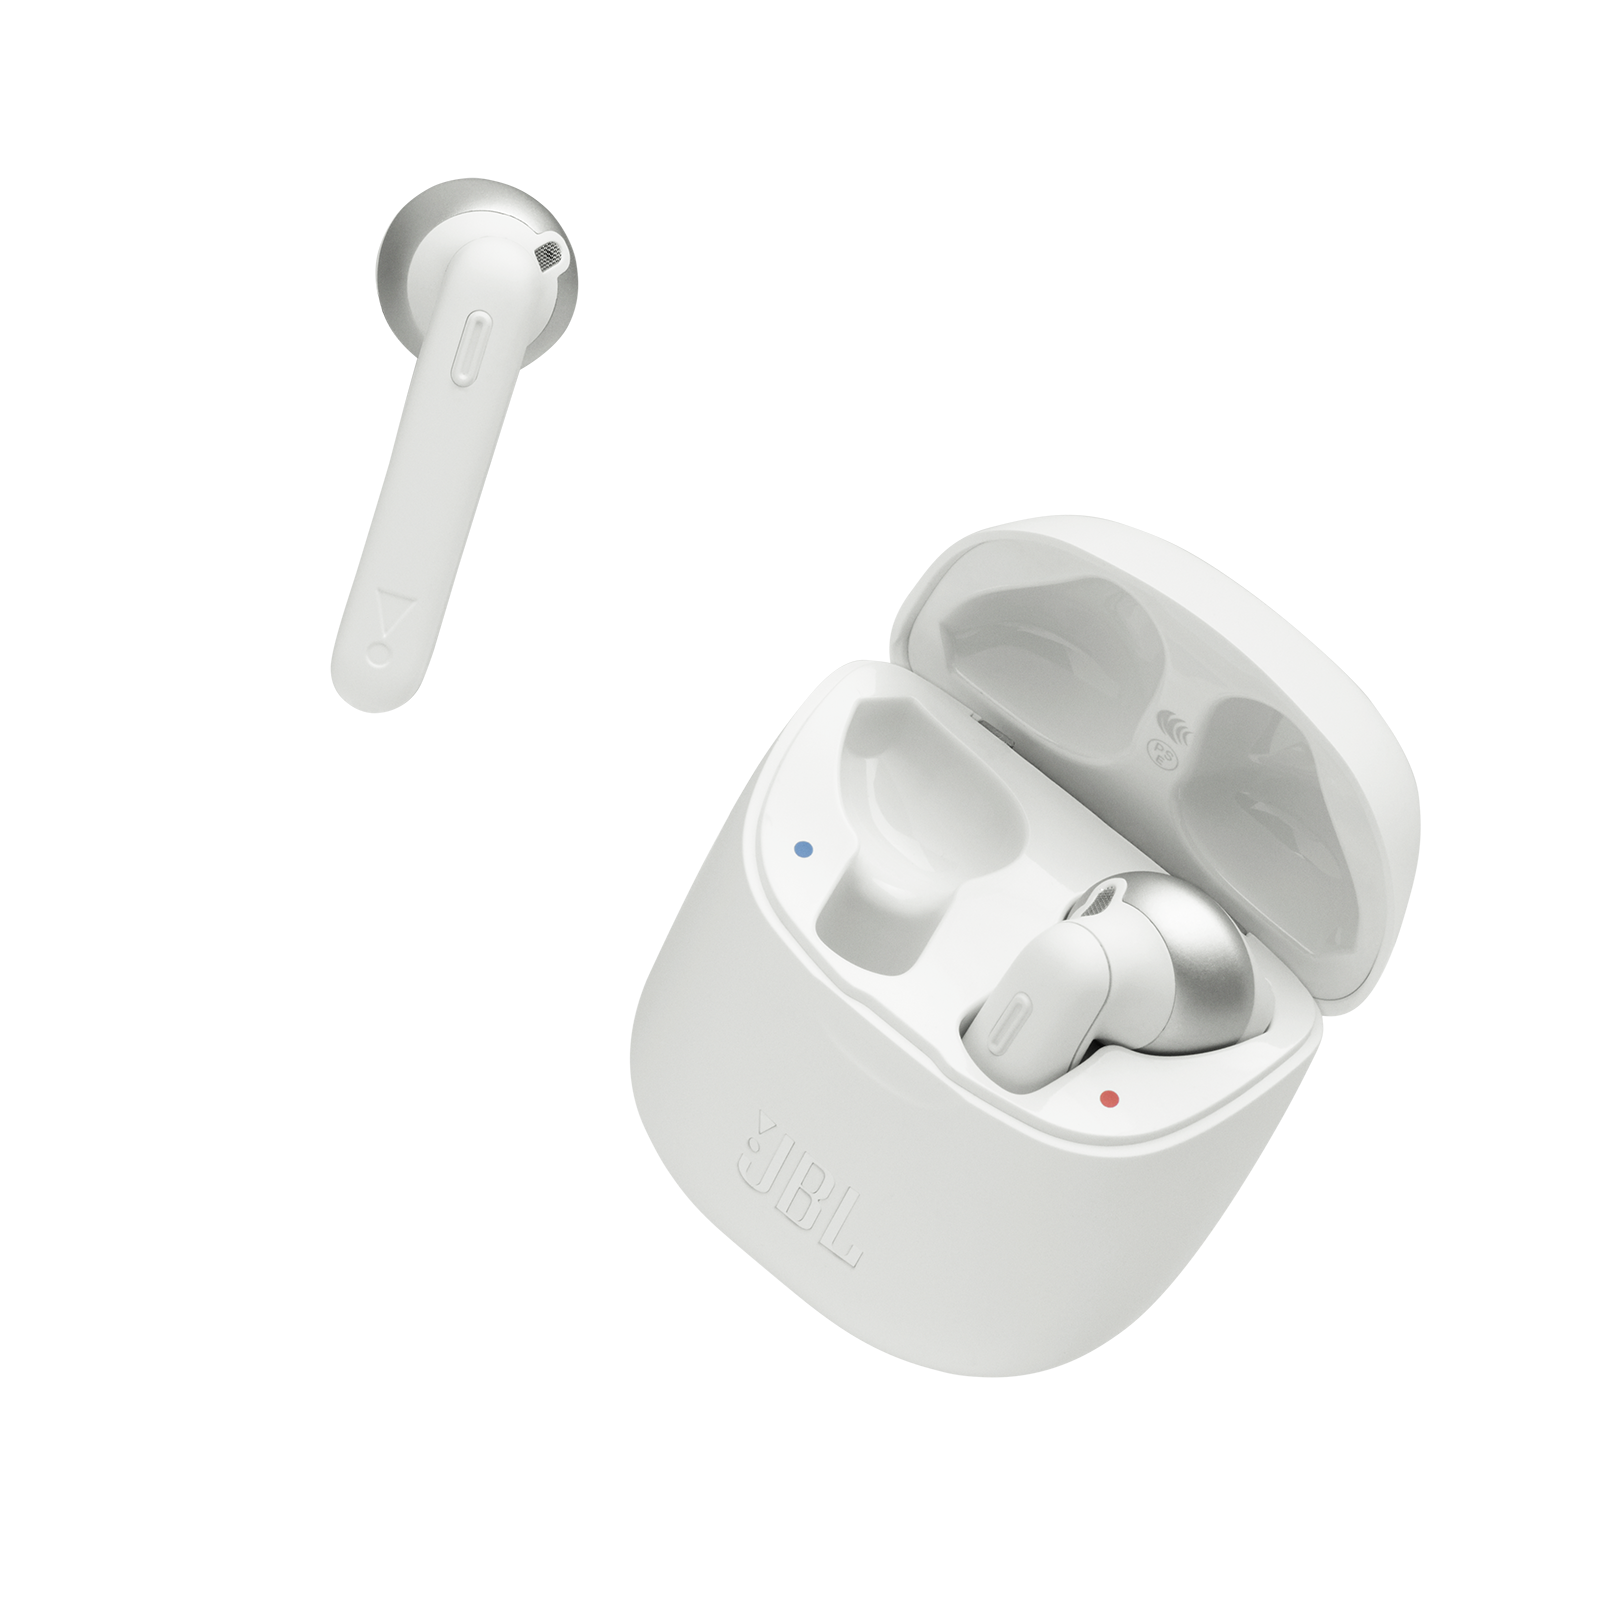 JBL TUNE 220TWS - White - True wireless earbuds - Detailshot 2